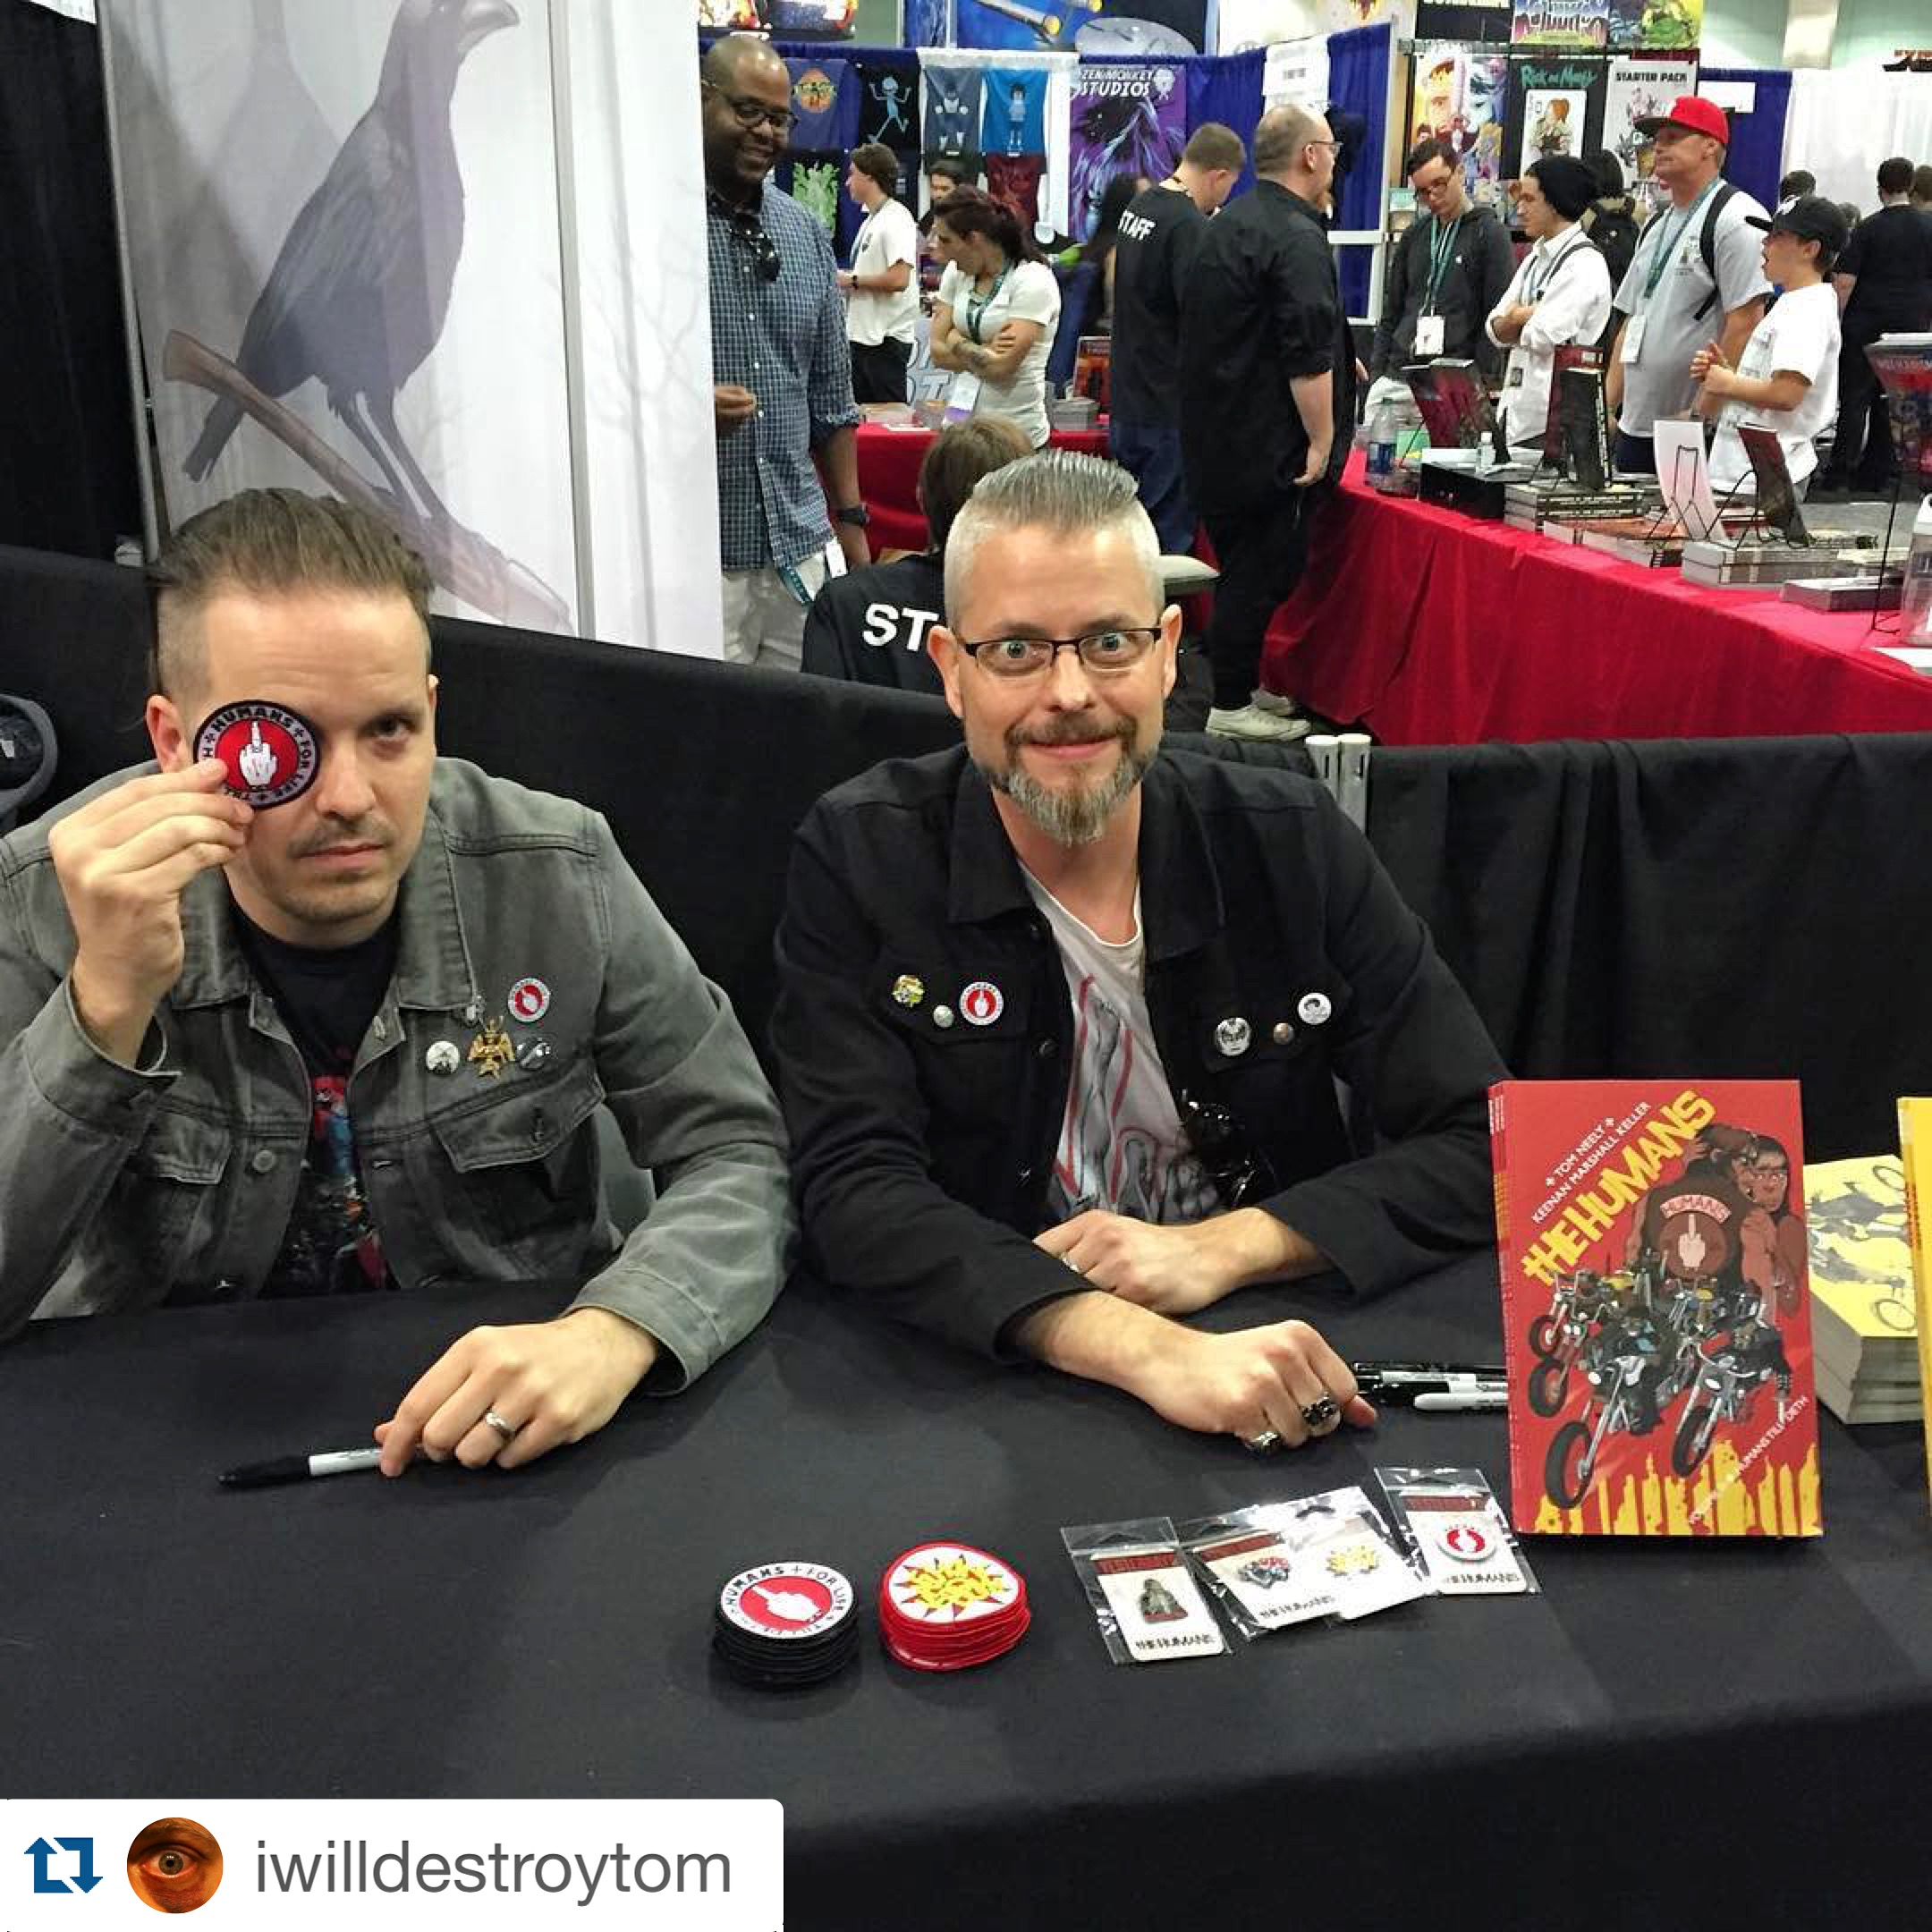 We did a few signings at the IMAGE Comics booth as well. Not sure where Tom got the speed...